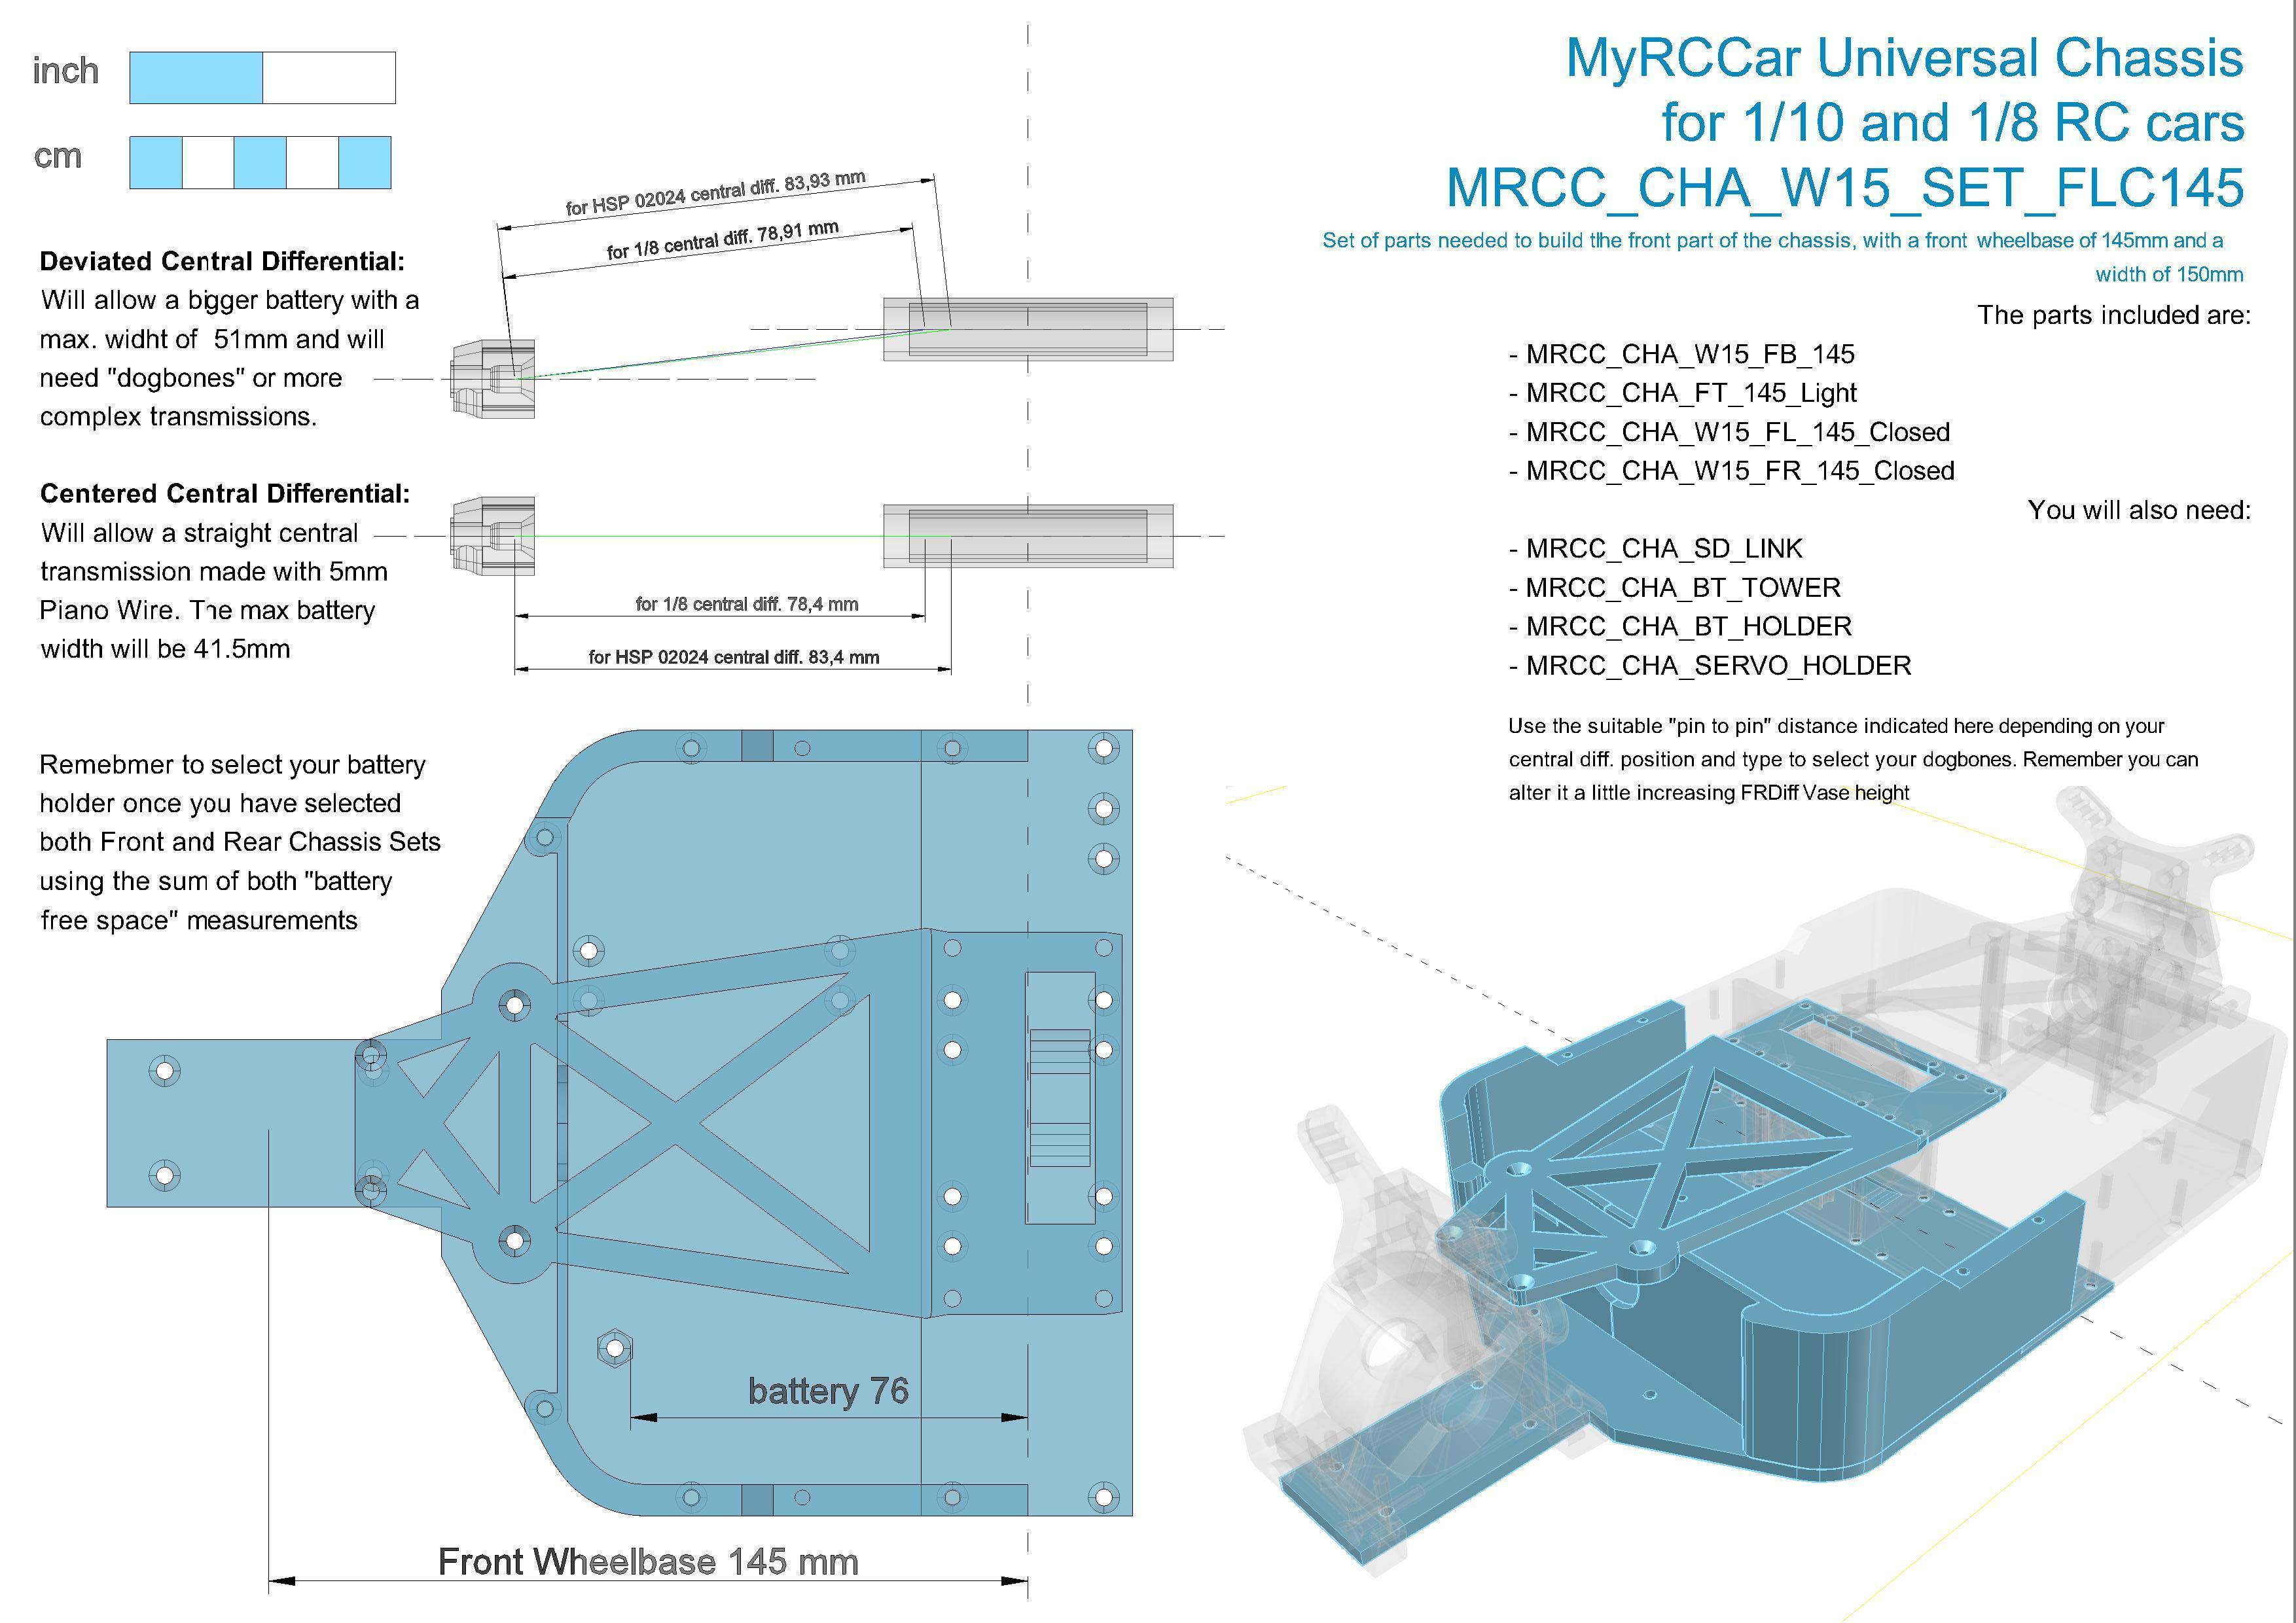 MRCC_OBTS_UP_W15_SET_FLC145.jpg Download STL file MyRCCar 1/10 OBTS Chassis Updated. Customizable chassis for On-Road, Buggy, Truggy or SCT RC Car • 3D printer design, dlb5